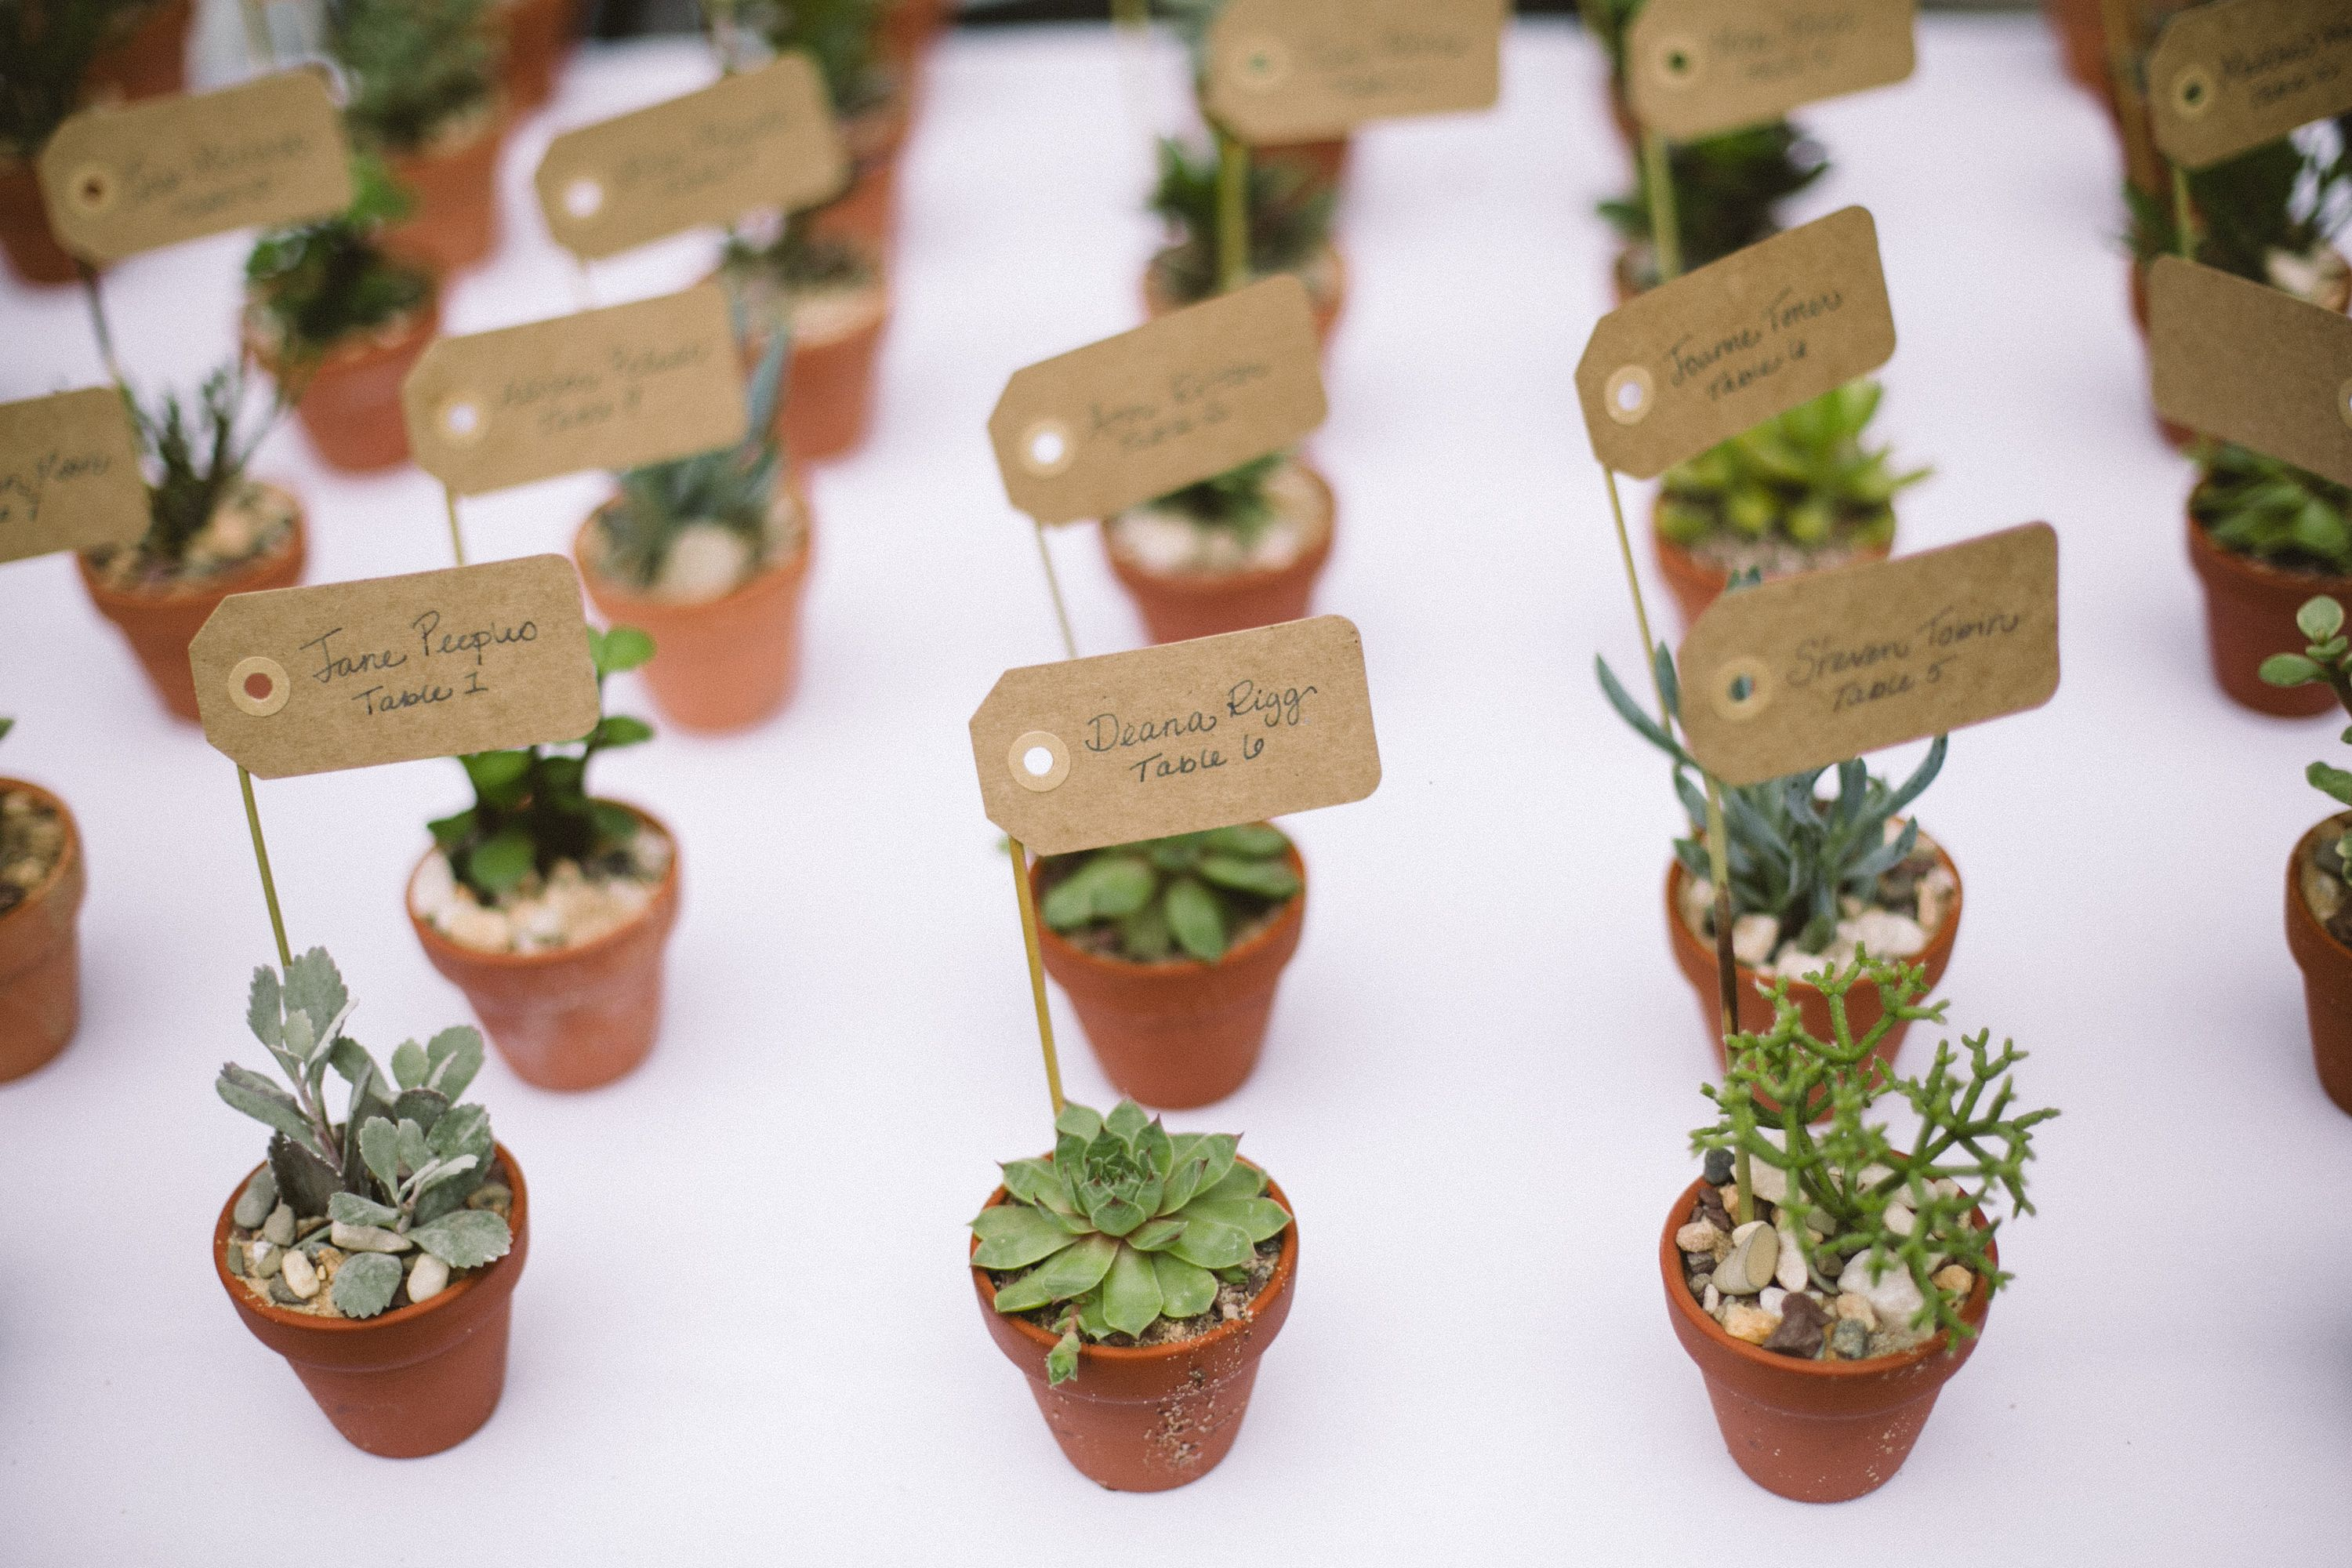 succulent wedding favors Place Cards hot Summer wedding at the Morris Arboretum featuring bold colors natural textures a cool bouquet and mini succulent favors